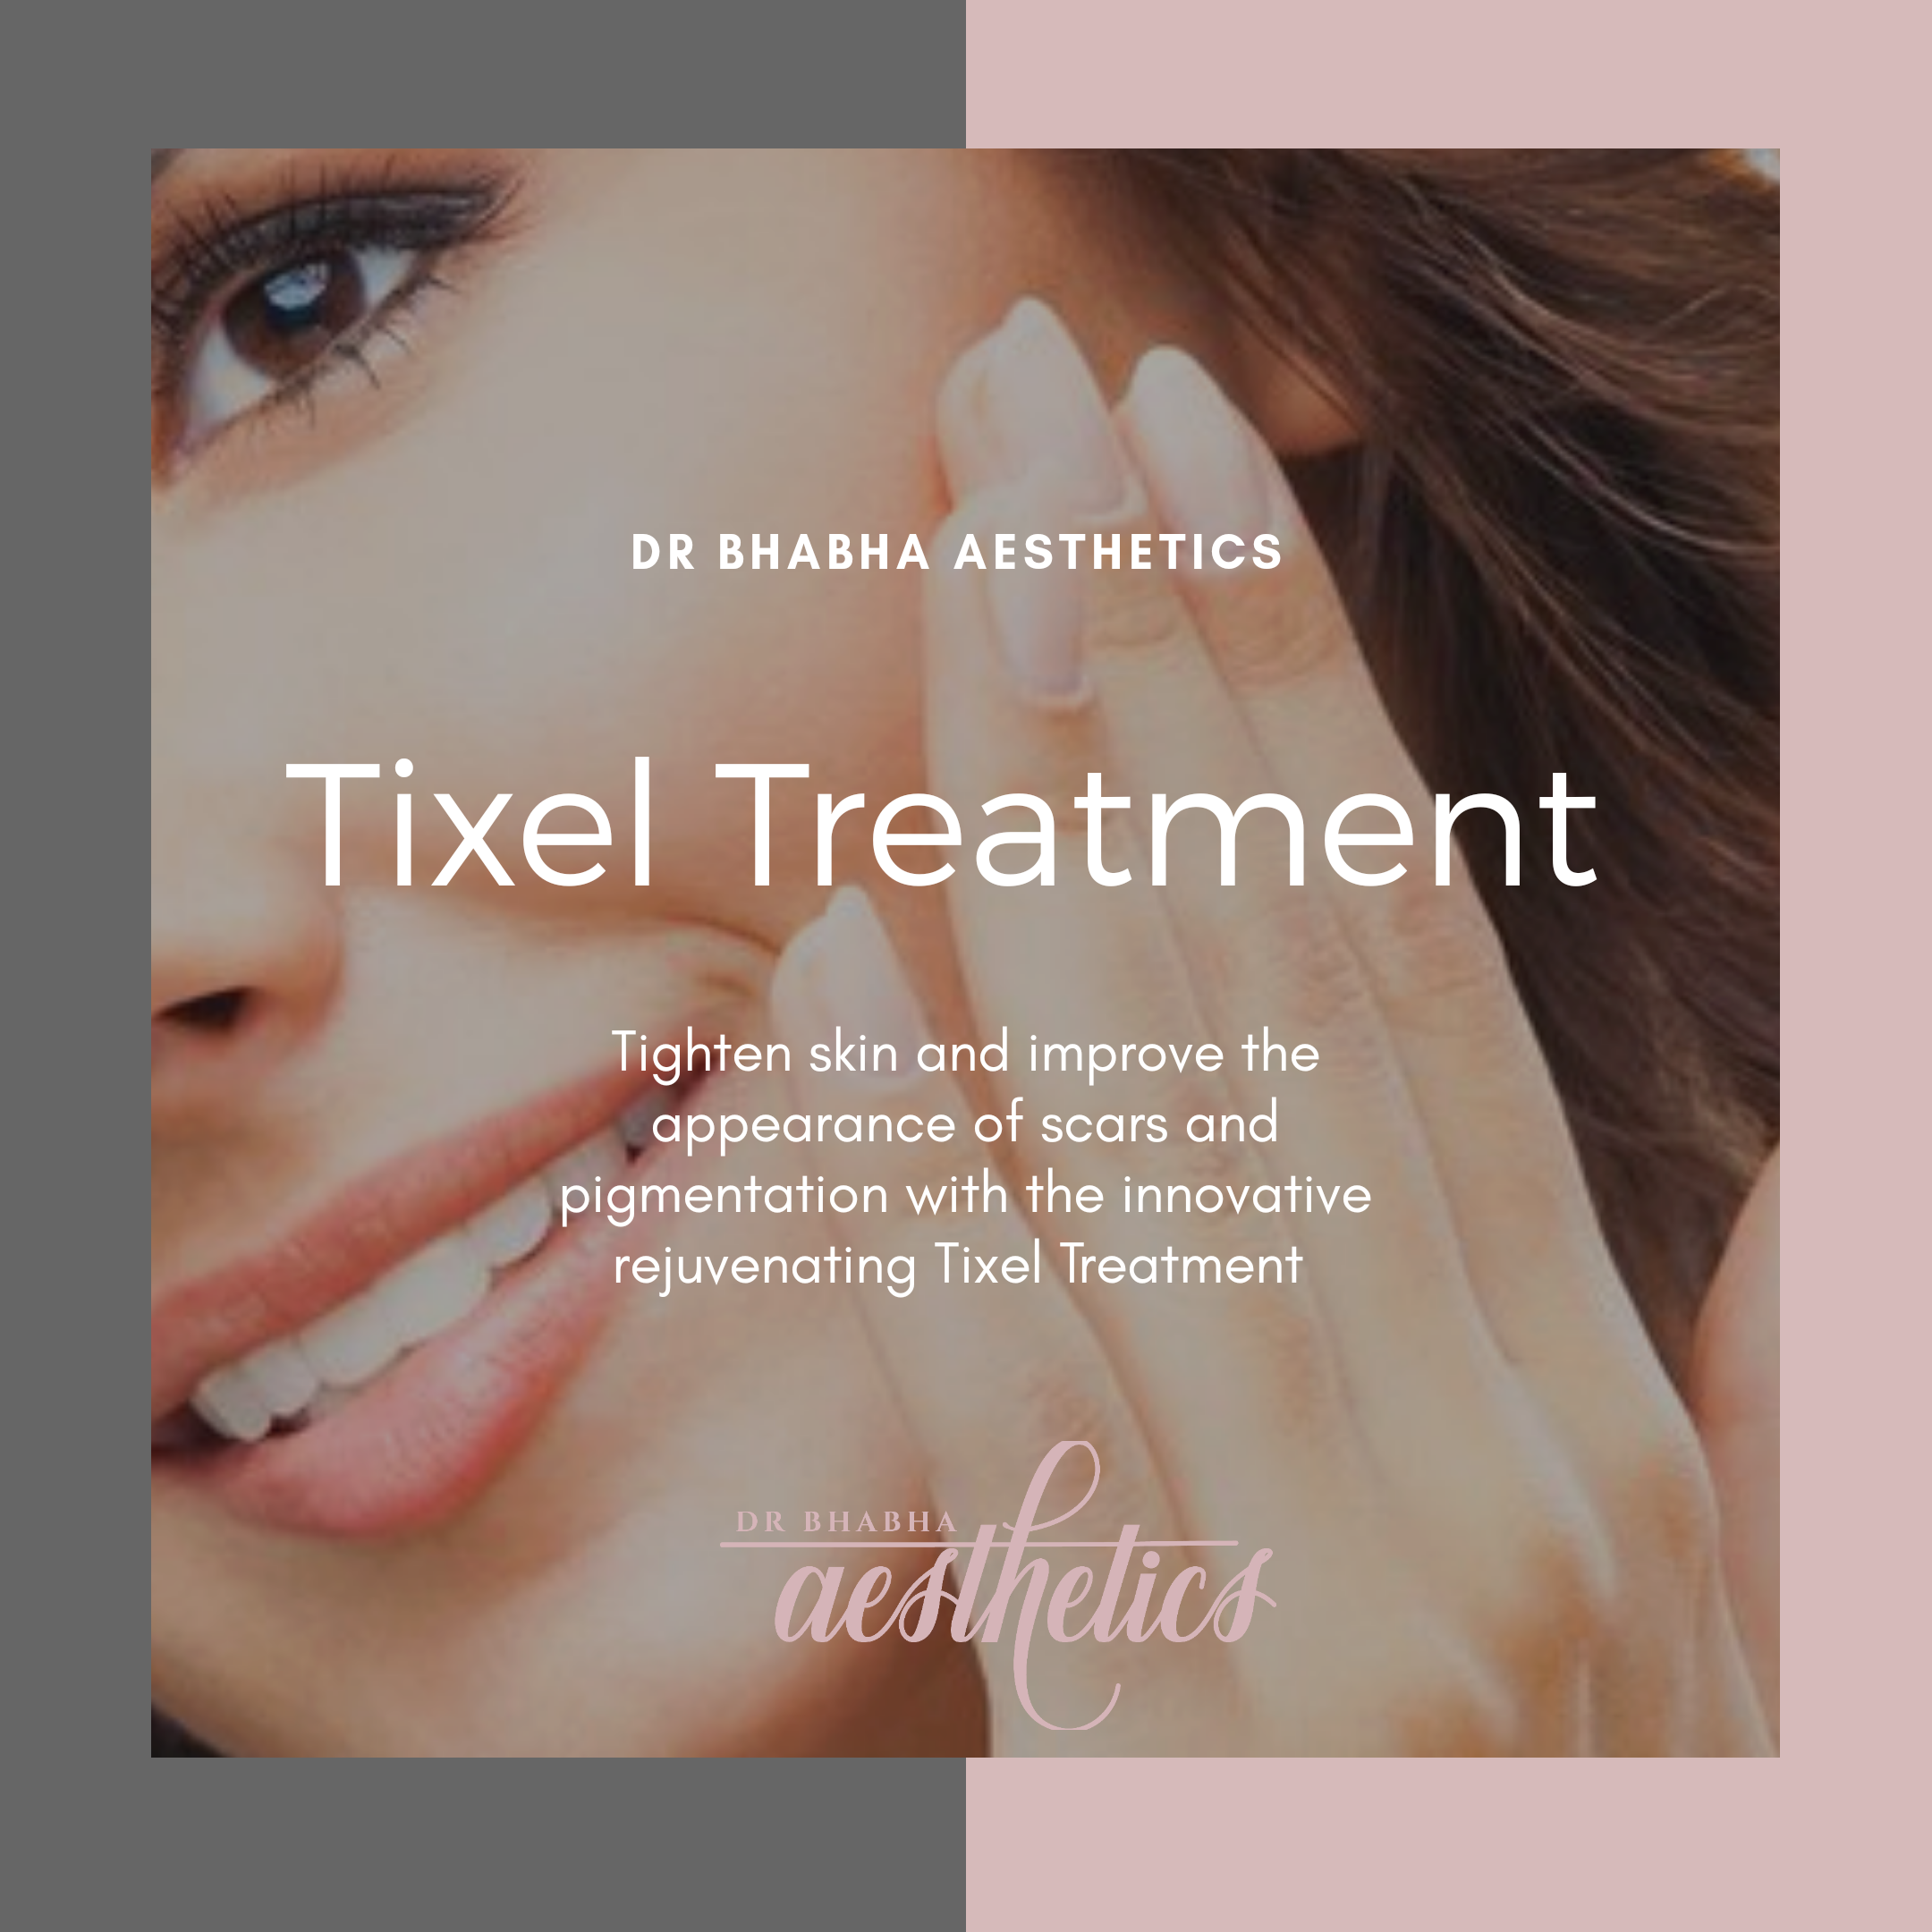 tixel treatment